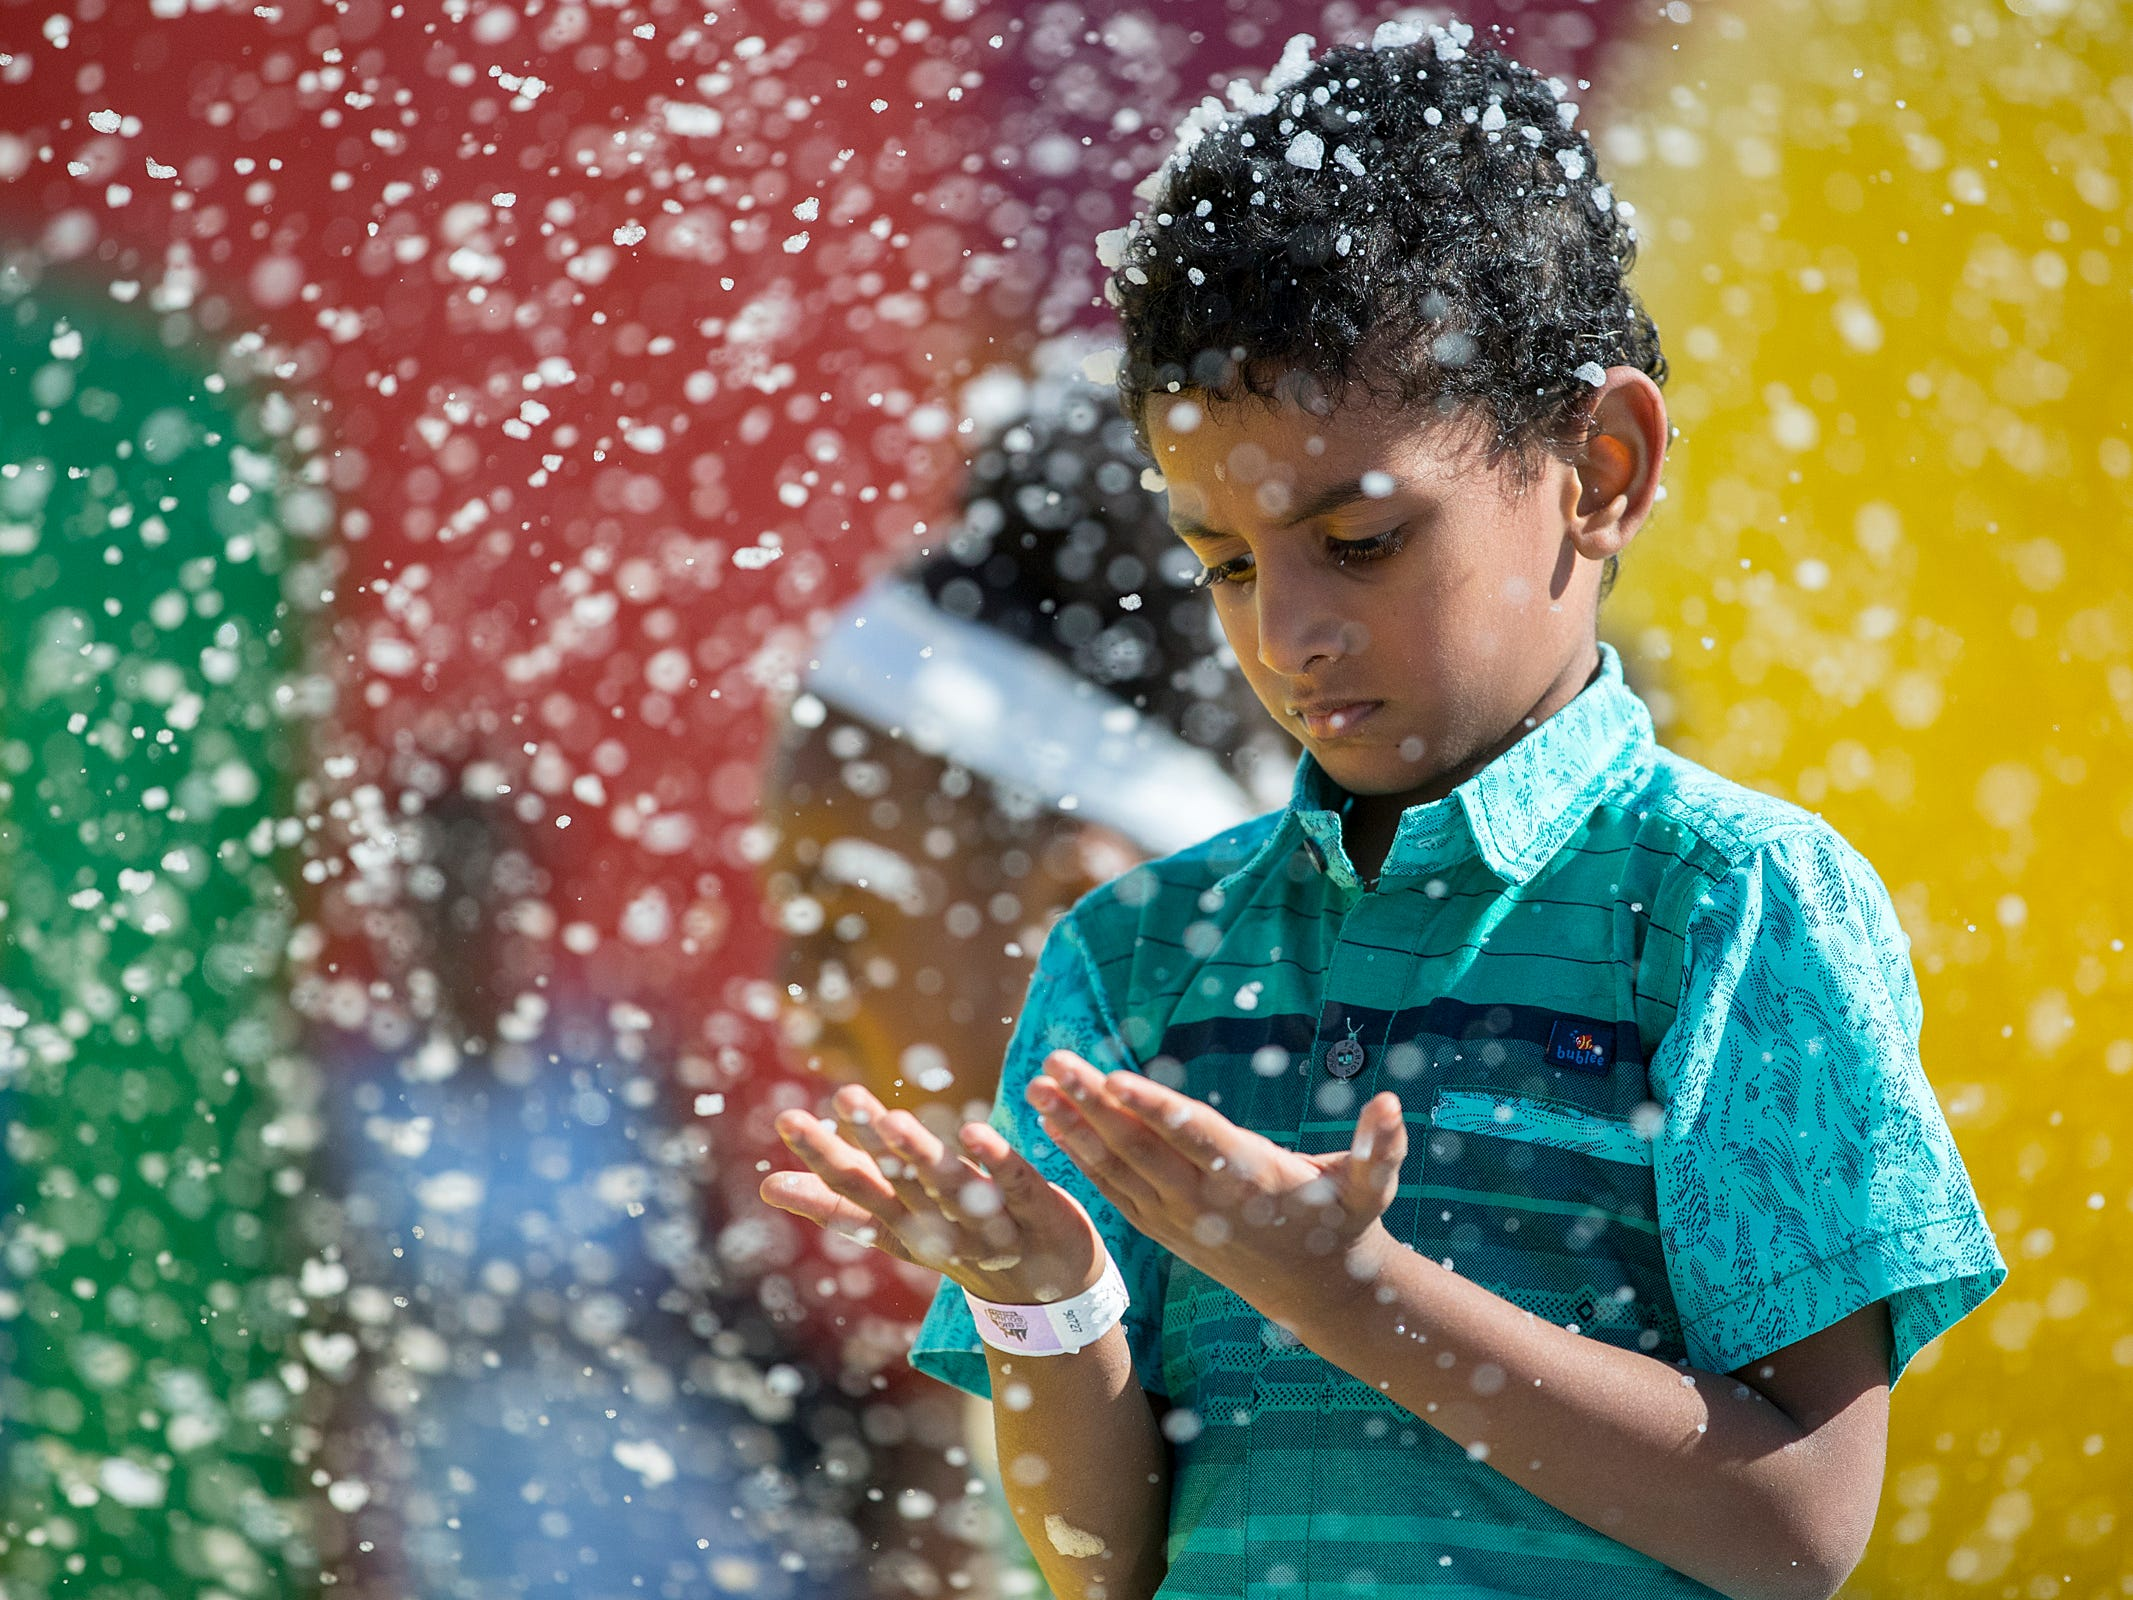 Sanjiv Balaji, 5, is covered in foam at the Big Bounce America inflatable attraction at Waterman's Family Farm in Indianapolis, Friday, Sept. 14, 2018. The world's largest bounce house covers 10,000 square feet and will be in Indy though September 16.